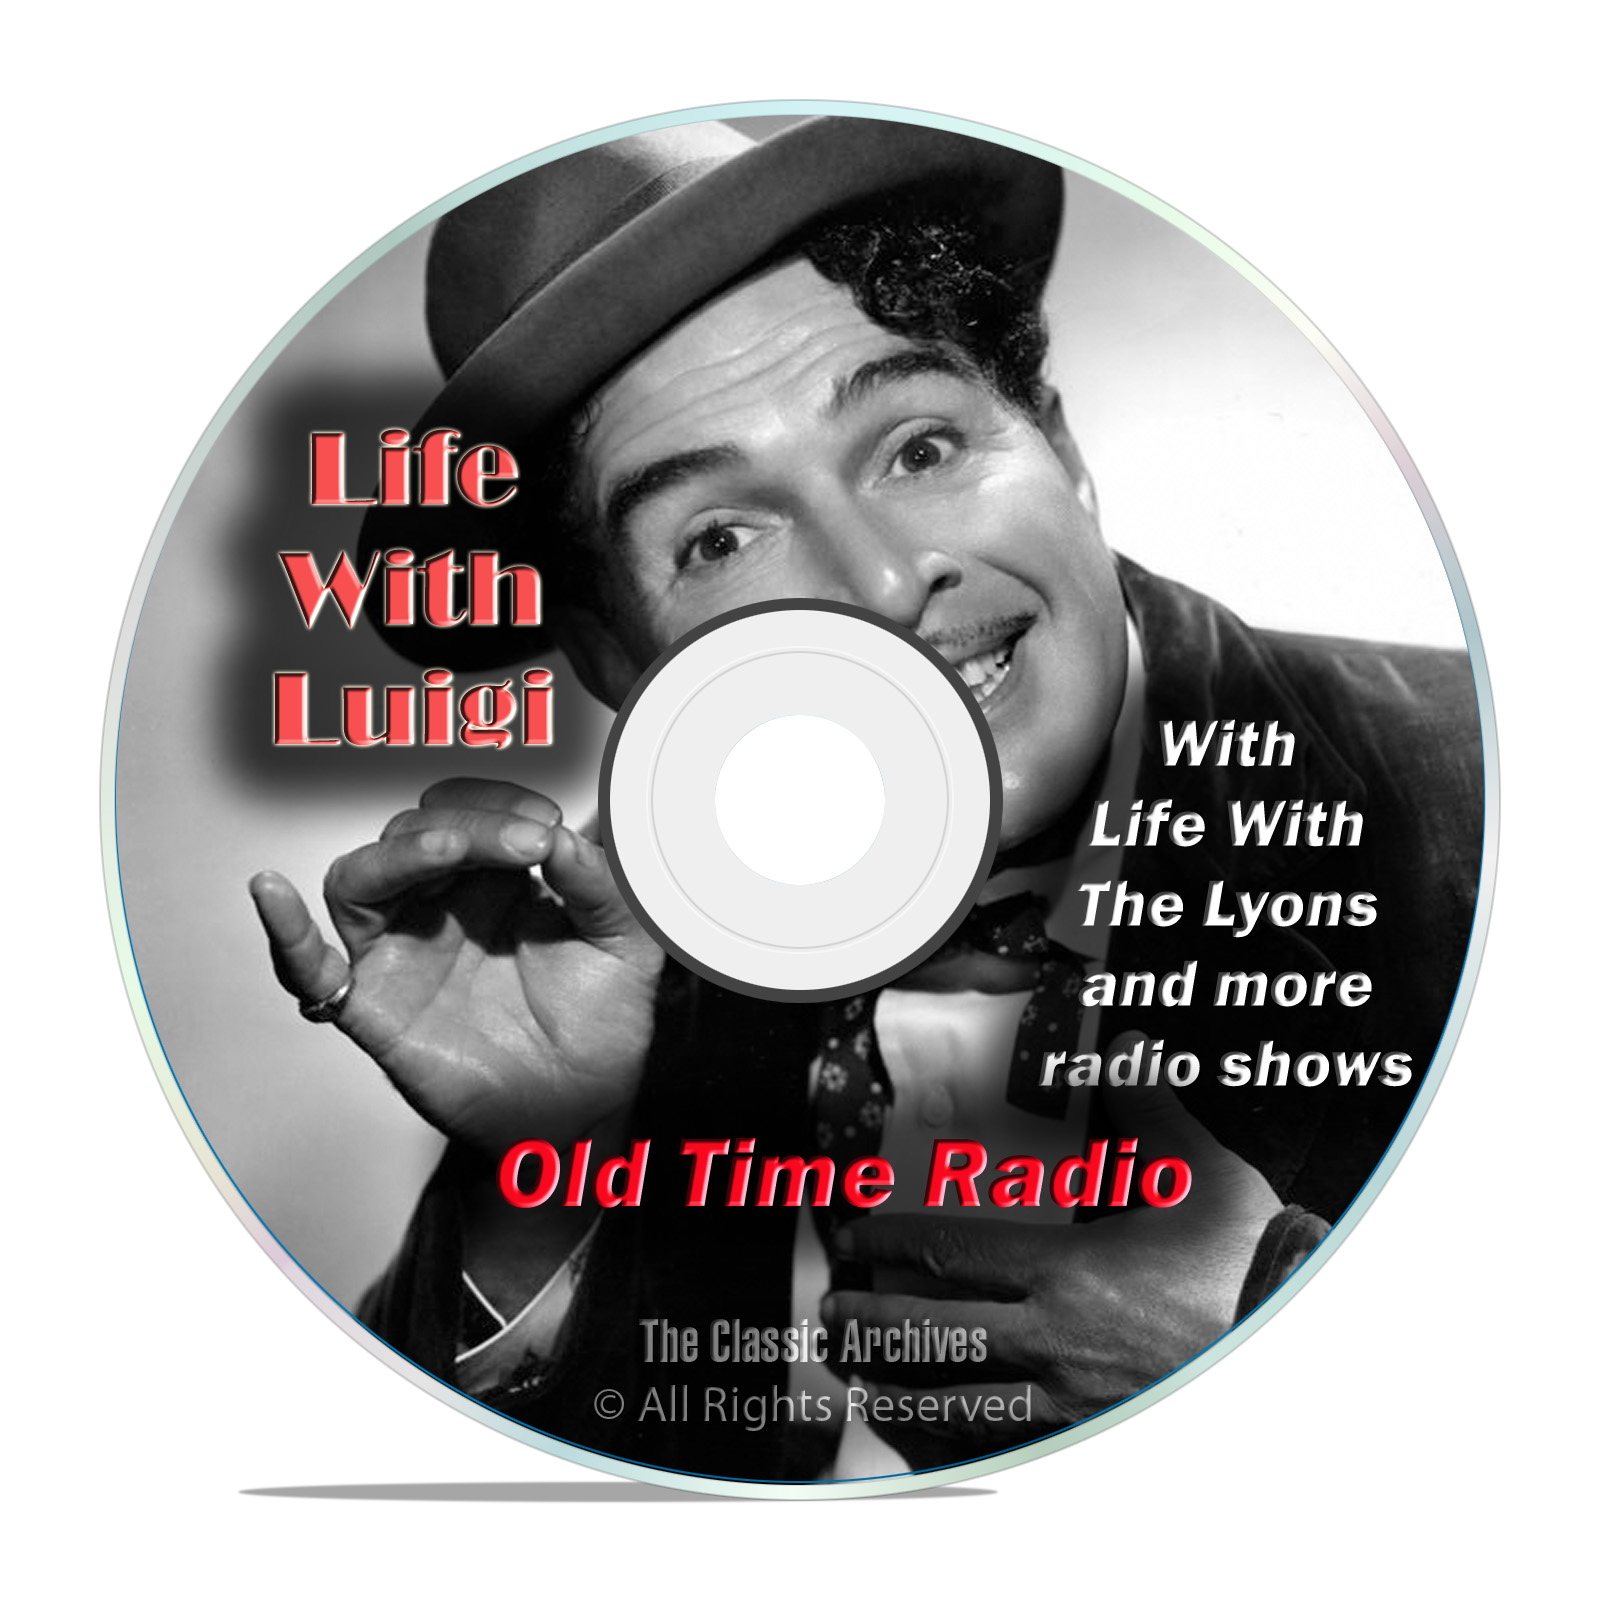 Life With Luigi, 924 Old Time Radio Sitcom Comedy Shows With Bonus mp3 DVD